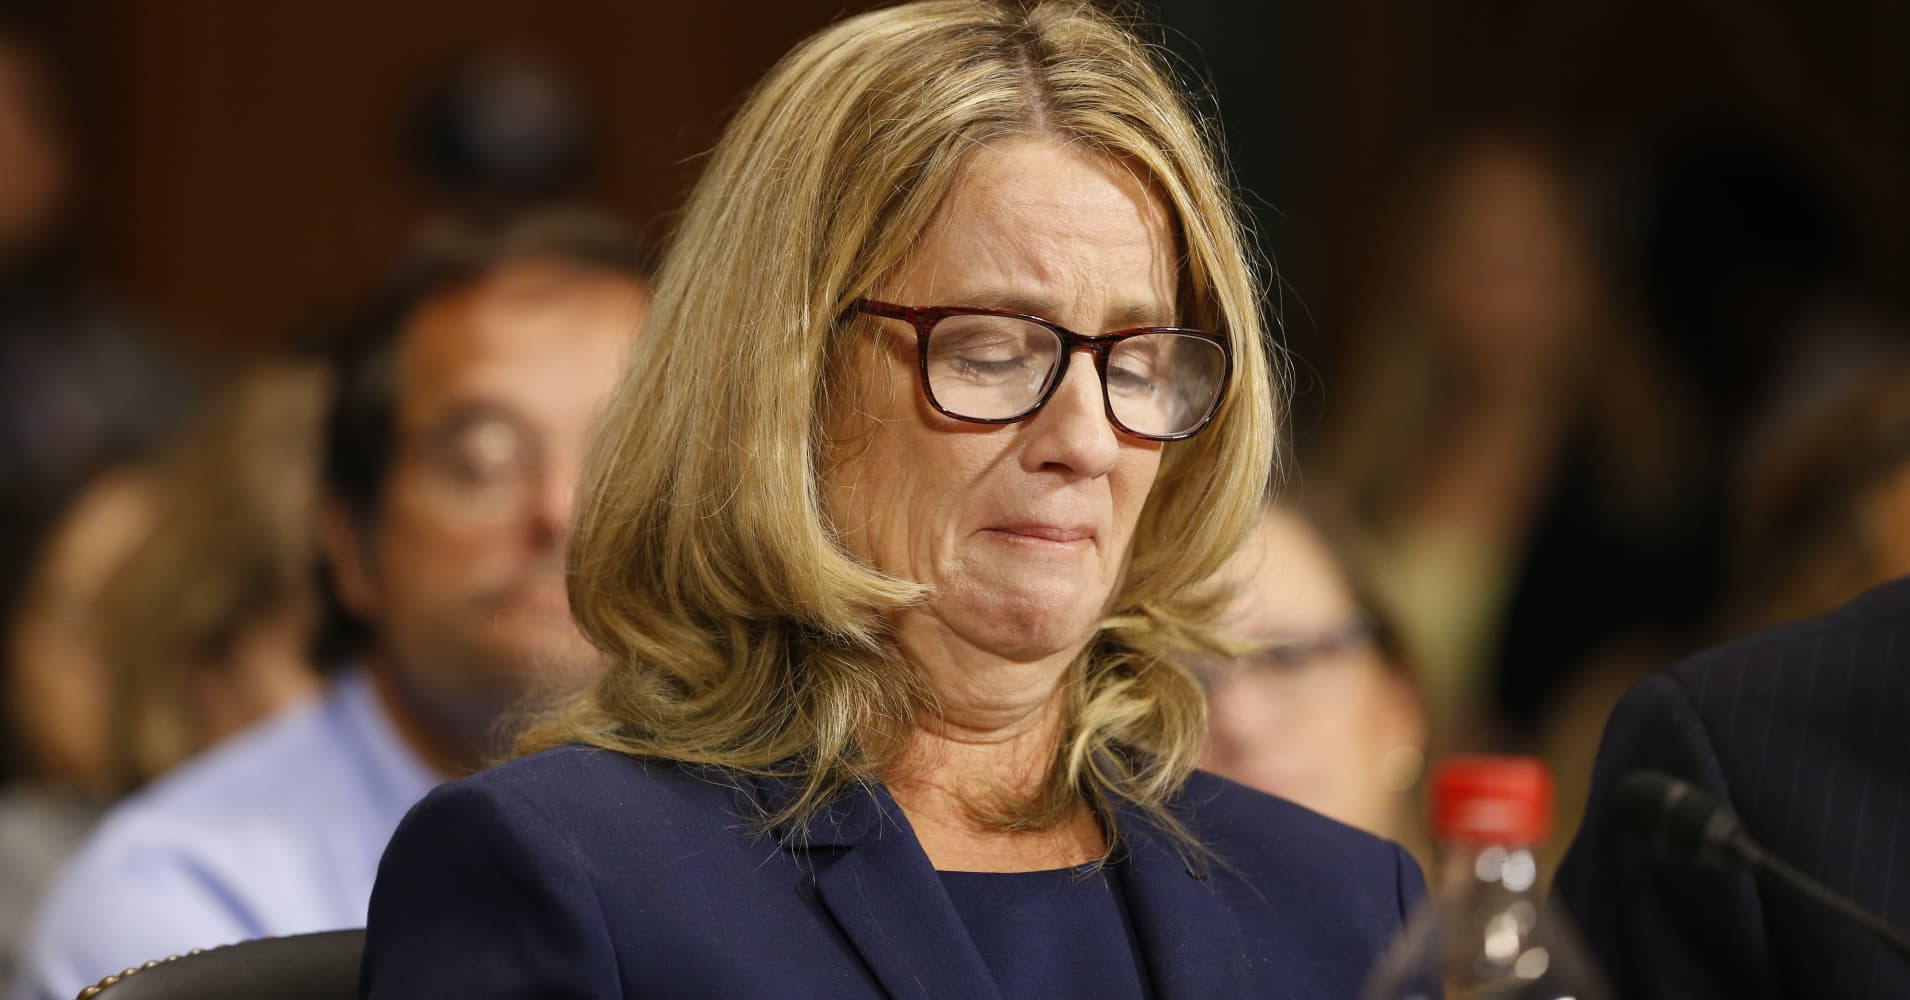 How Christine Blasey Ford's vulnerability shaped her credibility